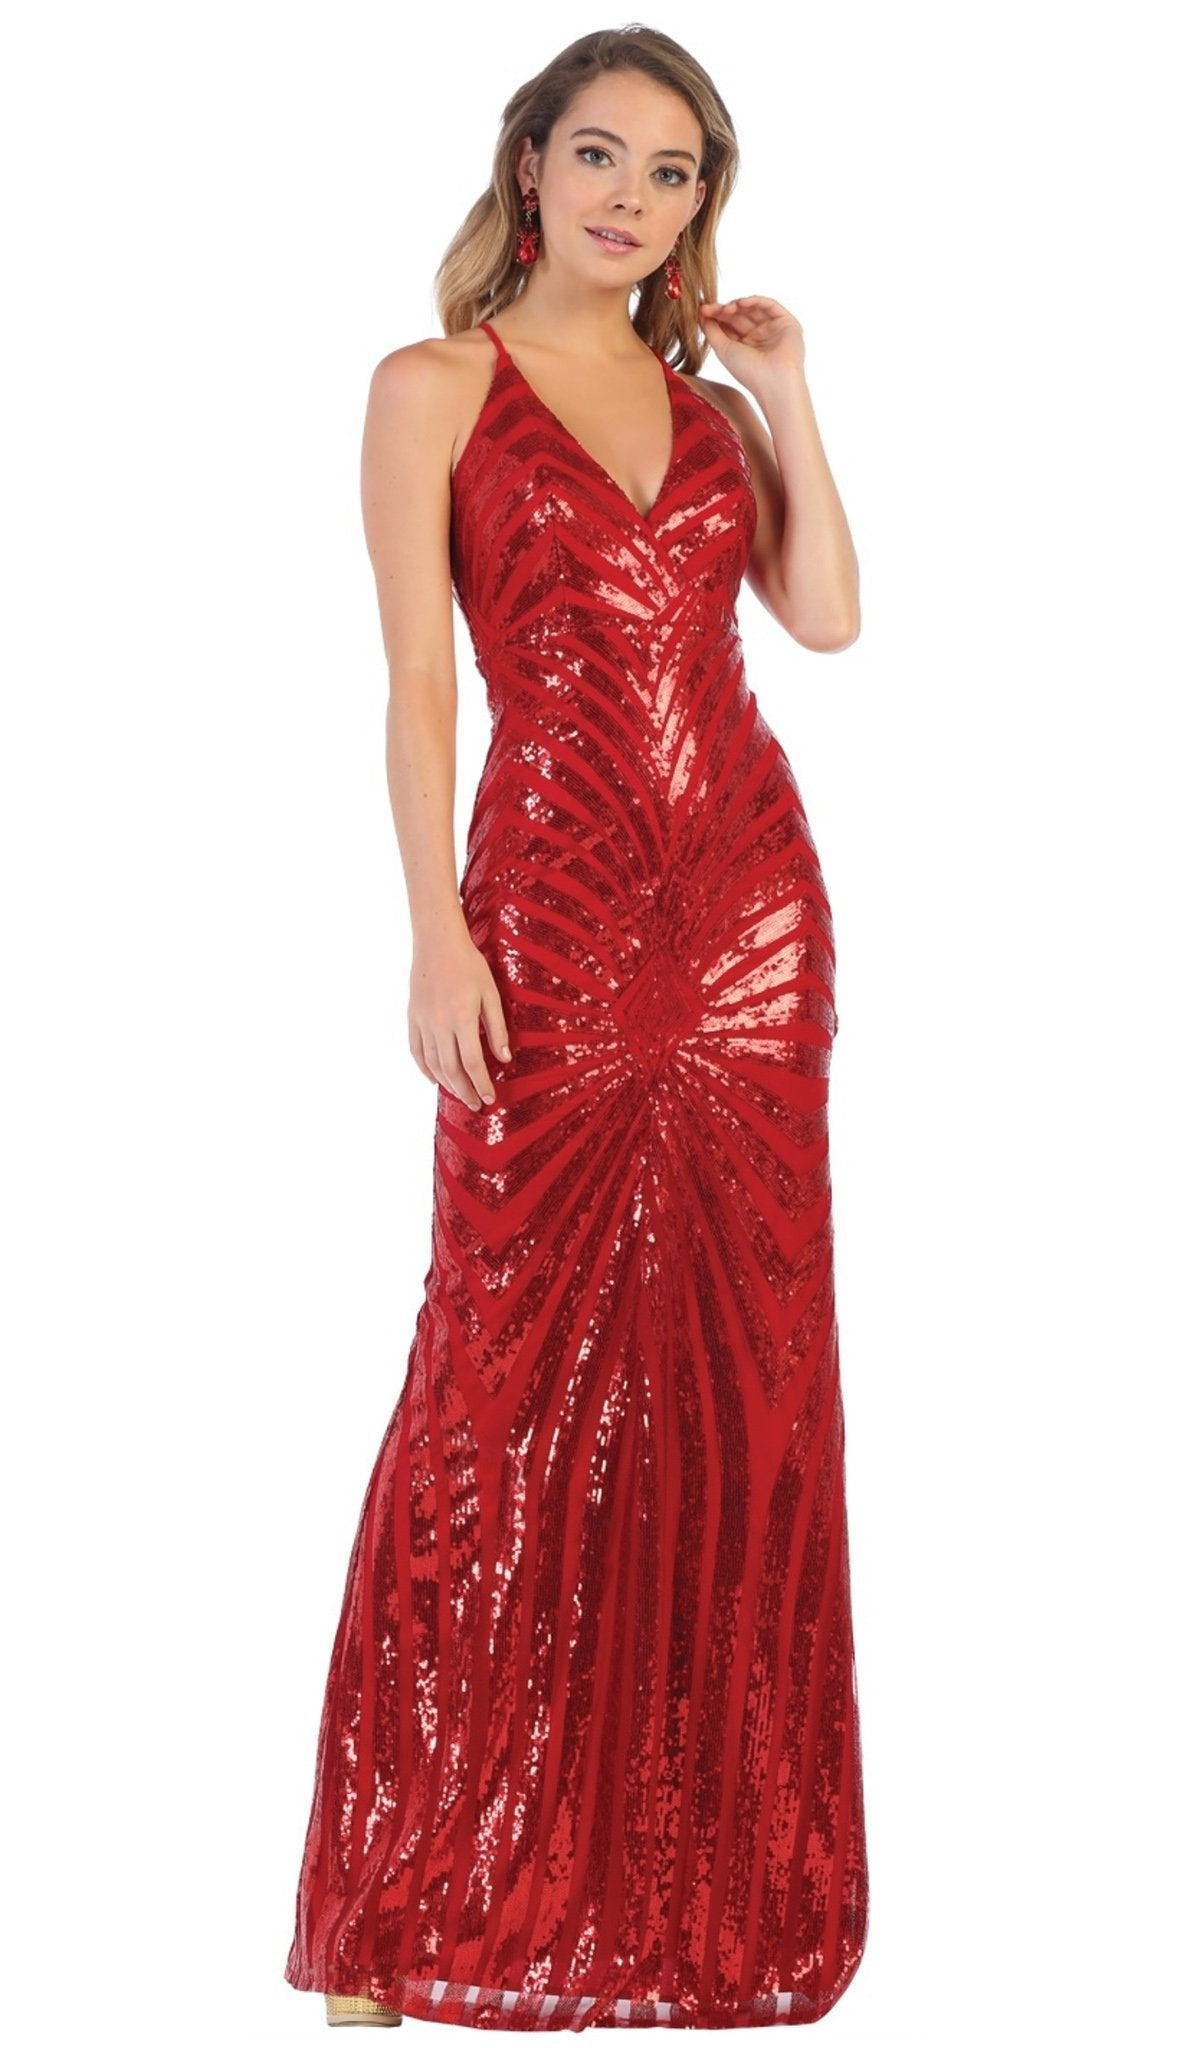 May Queen - RQ7695 Embellished Plunging V-neck Sheath Dress In Red